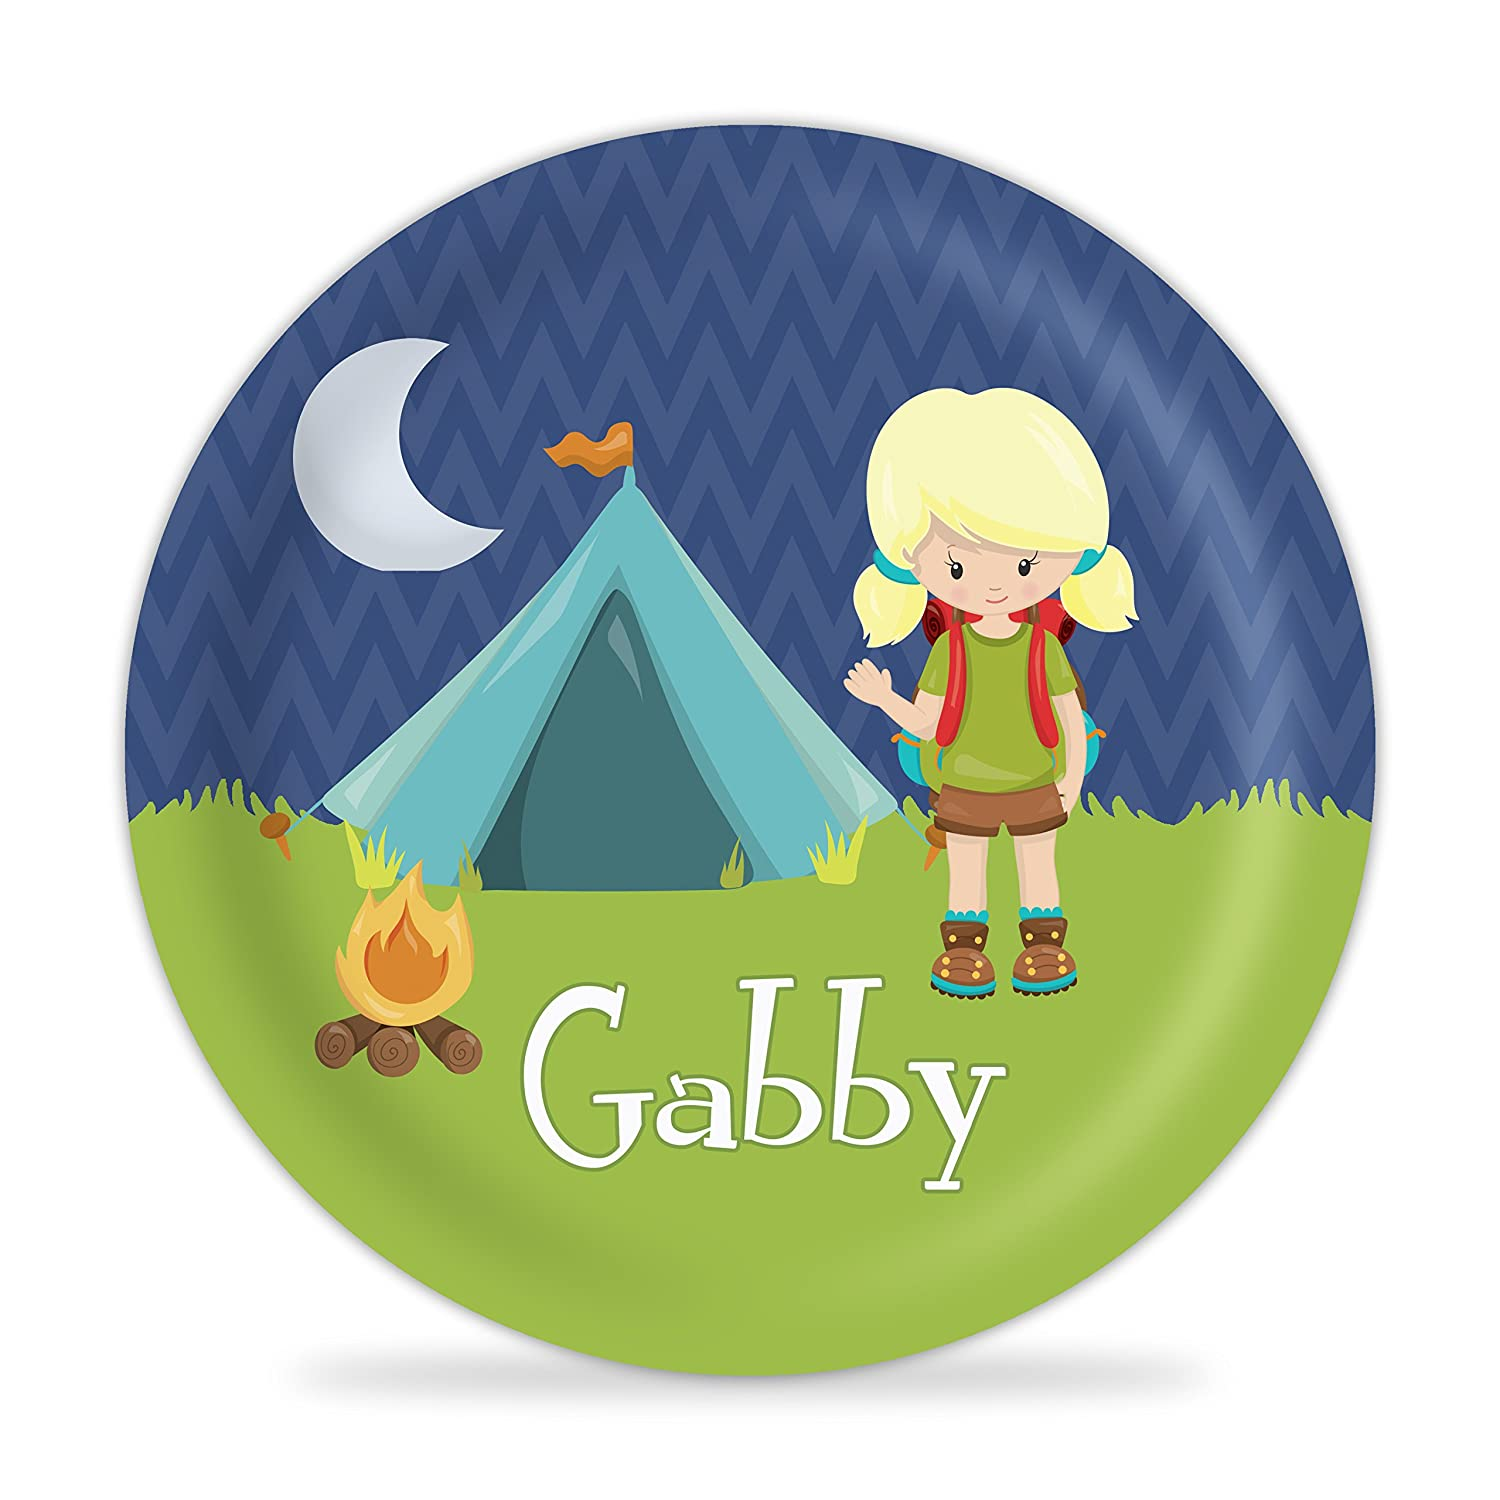 Camping Plate Blue Tent Camper Girl Melamine Personalized Name Gift